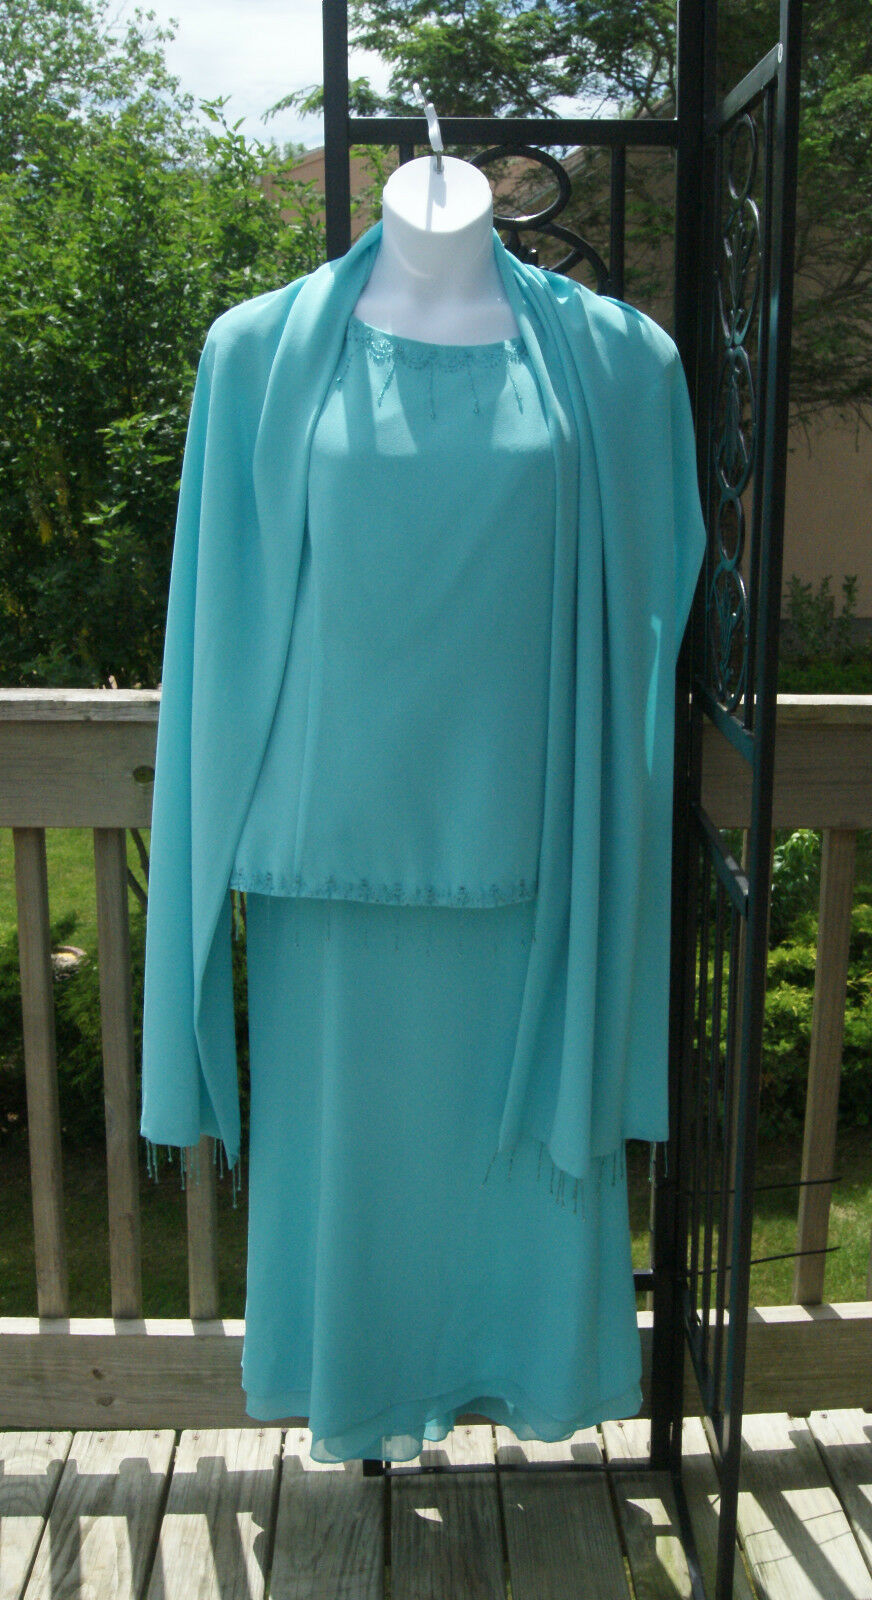 MISTY LANE 2Pc GOWN & Scarf Plus Size 22 Mother of Bride/Groom Cruise Wear NWOT